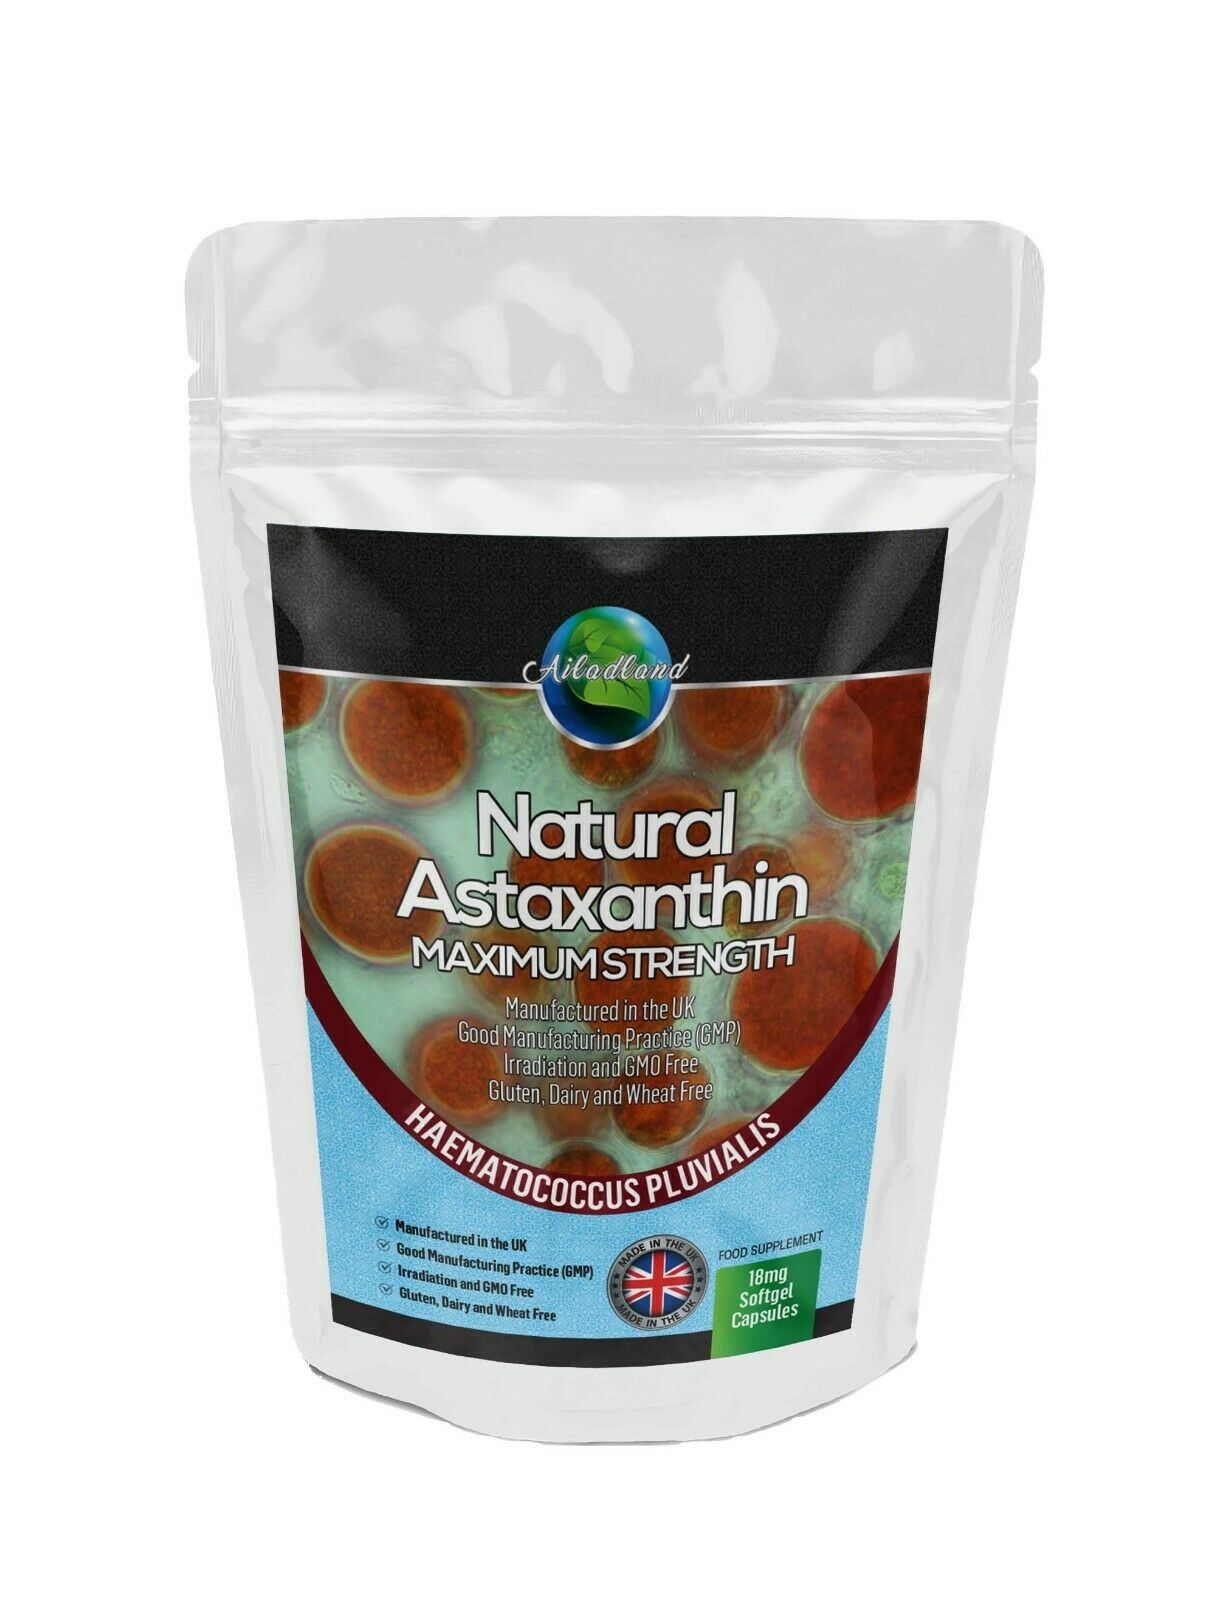 NATURAL ASTAXANTHIN 18mg - 180 HIGHEST STRENGTH SOFTGELS, ANTIOXIDANT MADE IN UK